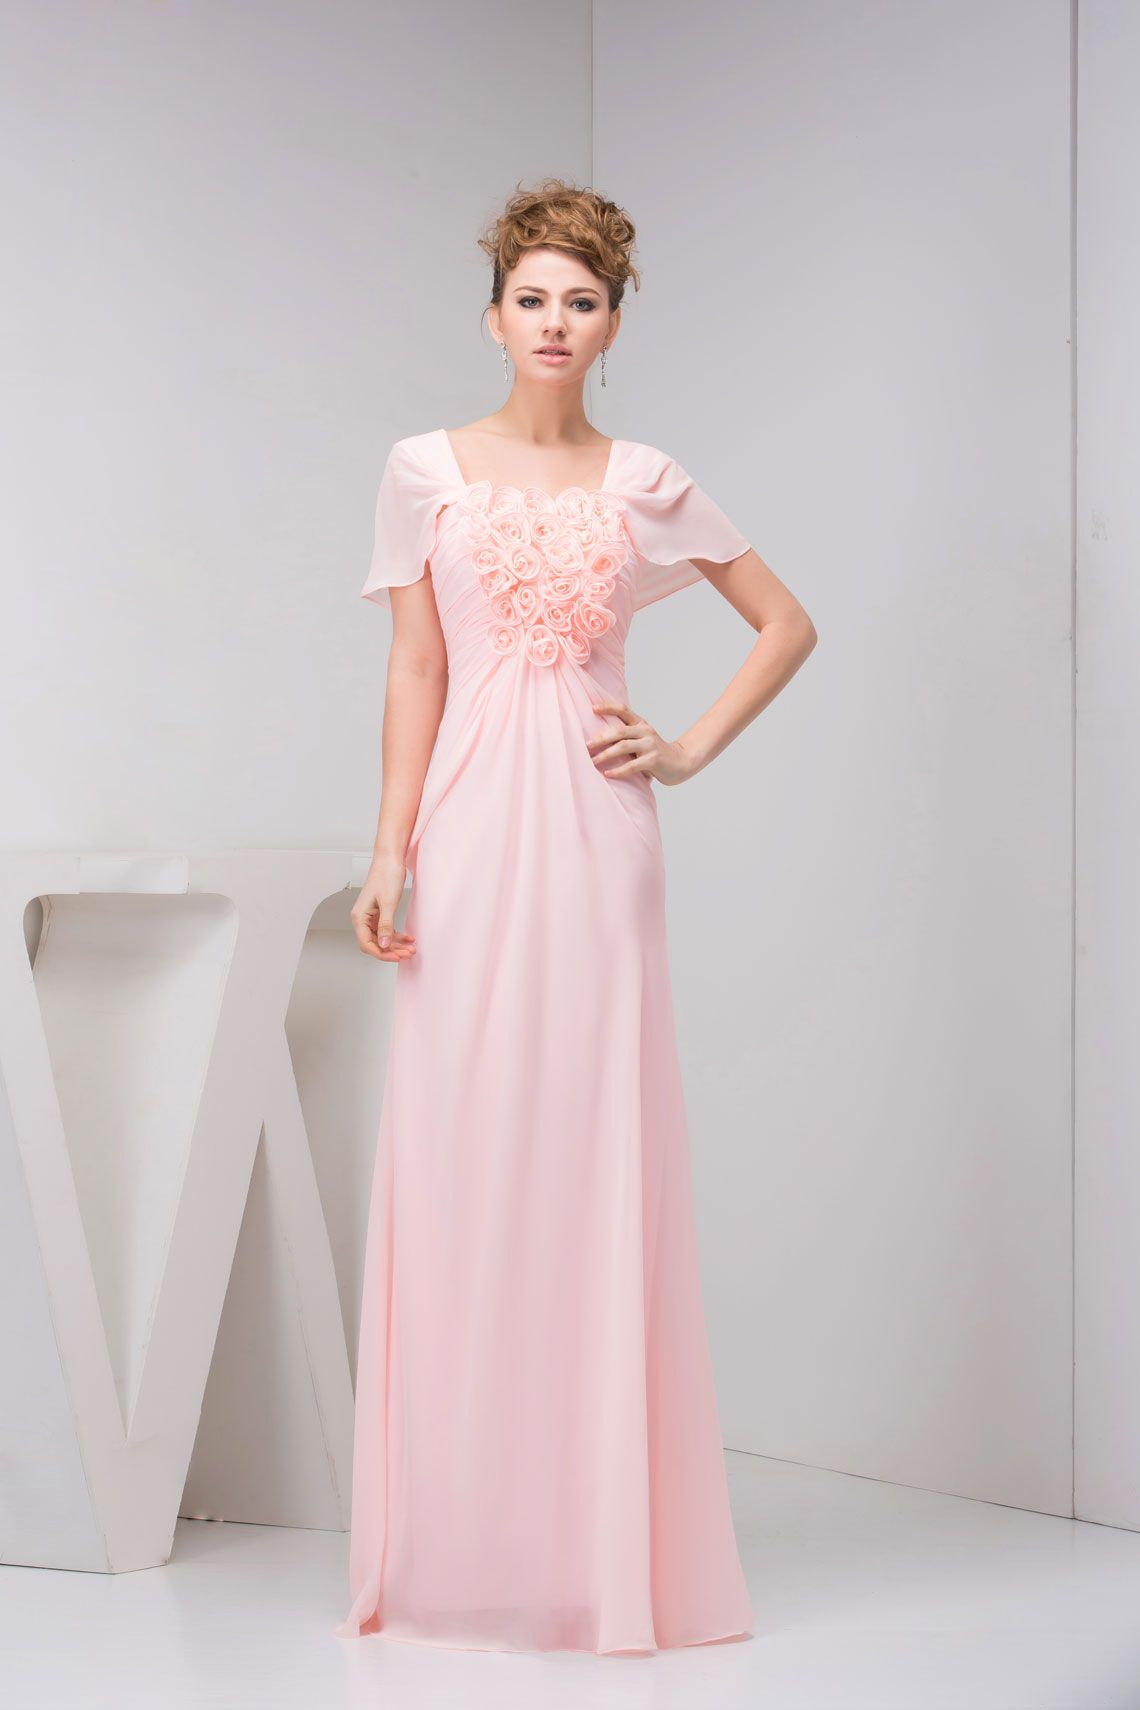 Pink floorlength square chiffon aline evening dress with flowers